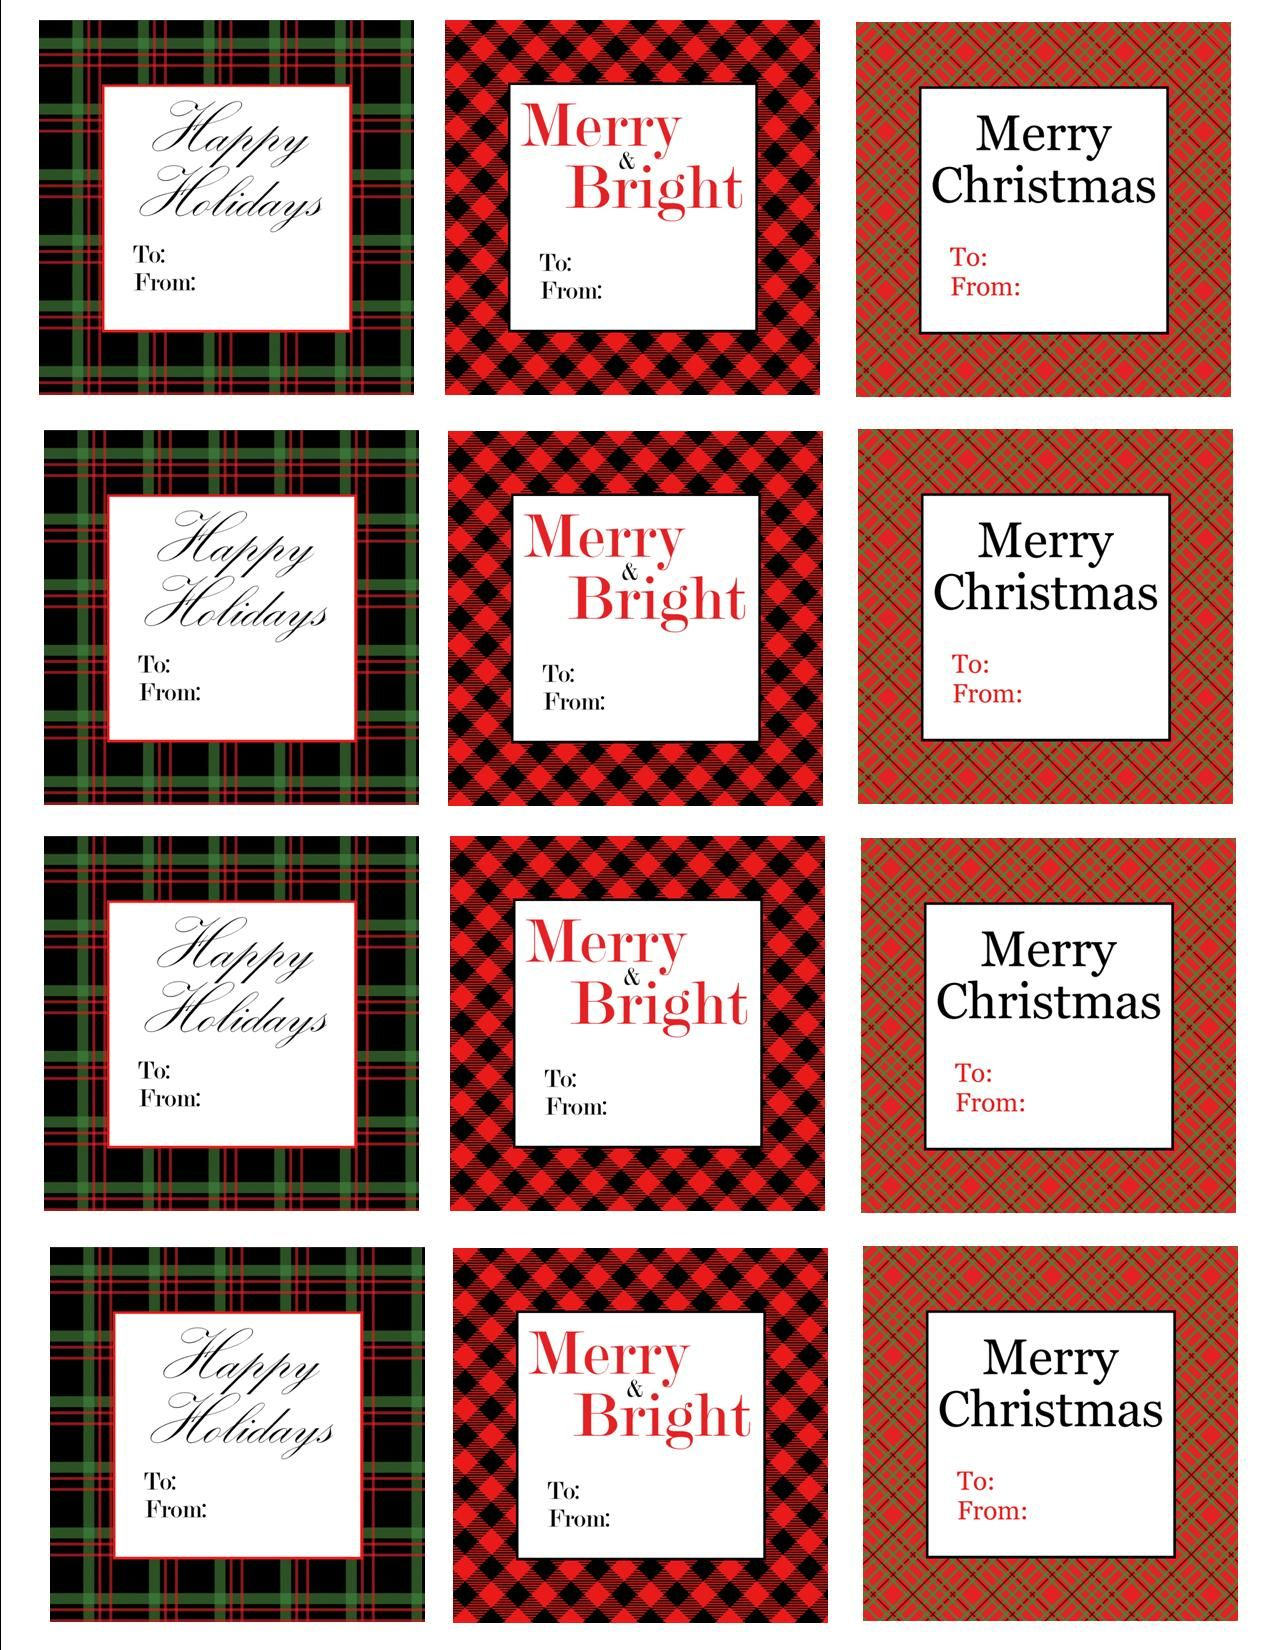 Free printable gift tags prints on 85x11 sheets of paper free printable gift tags prints on 85x11 sheets of paper freegifttags negle Choice Image